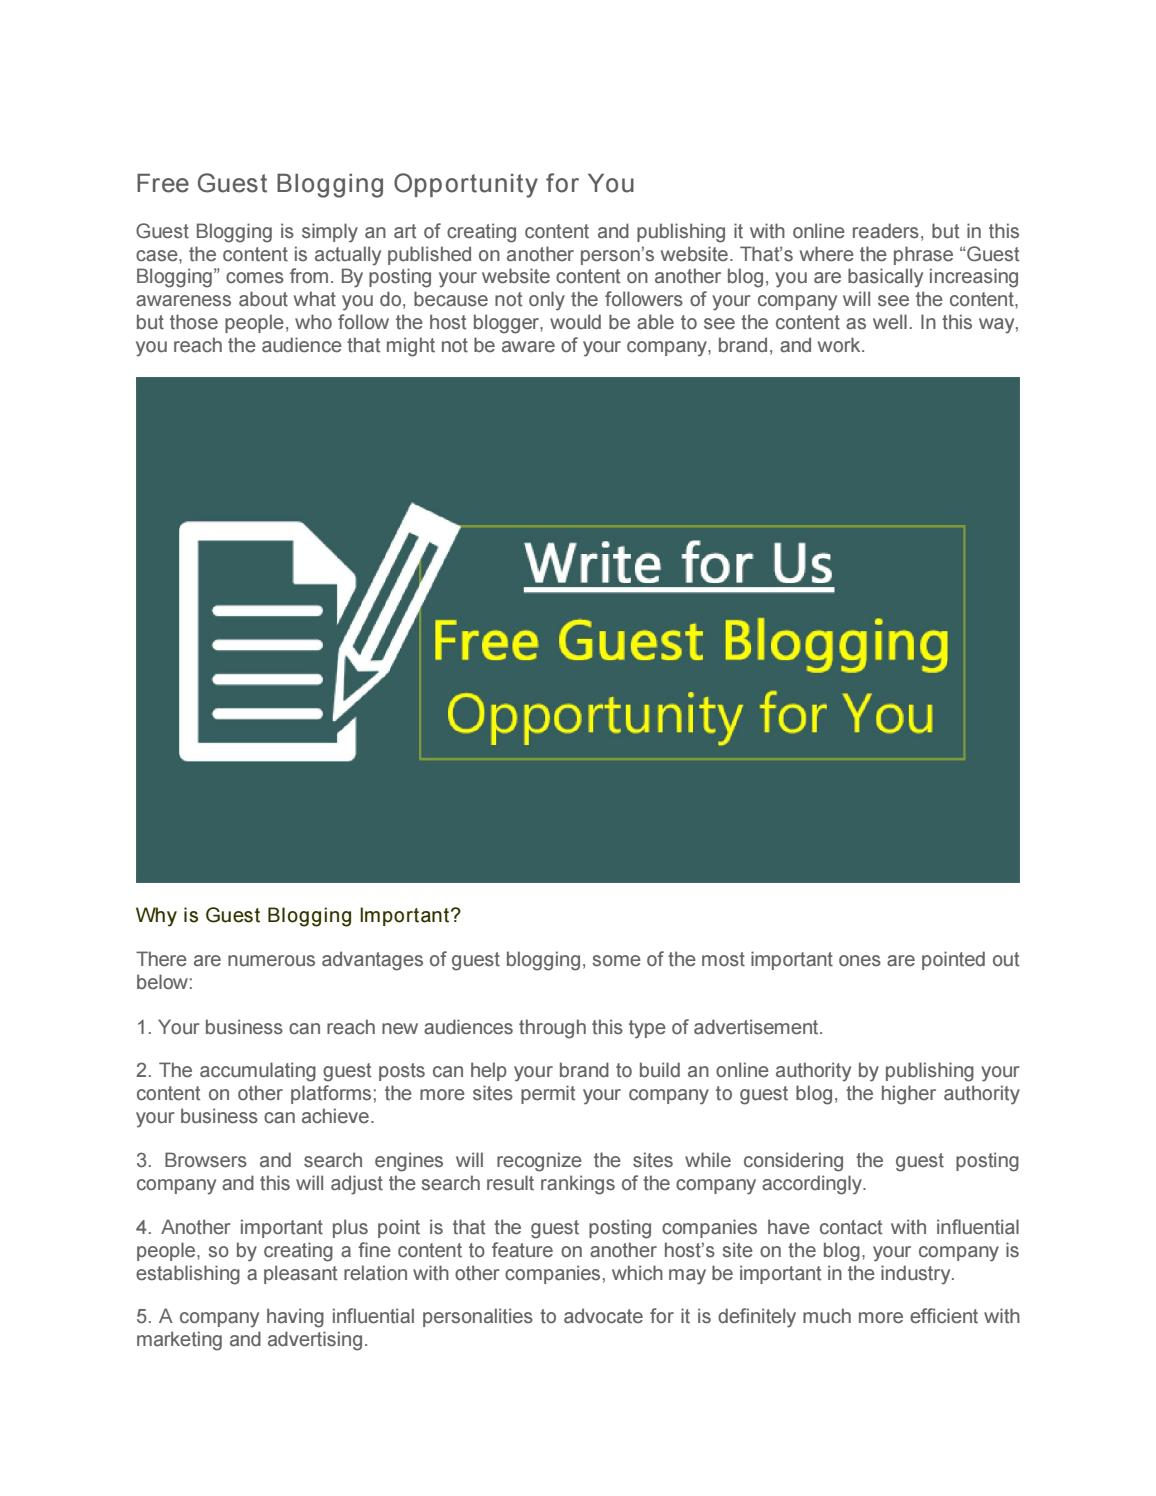 Write for us - free guest blogging opportunity for you by